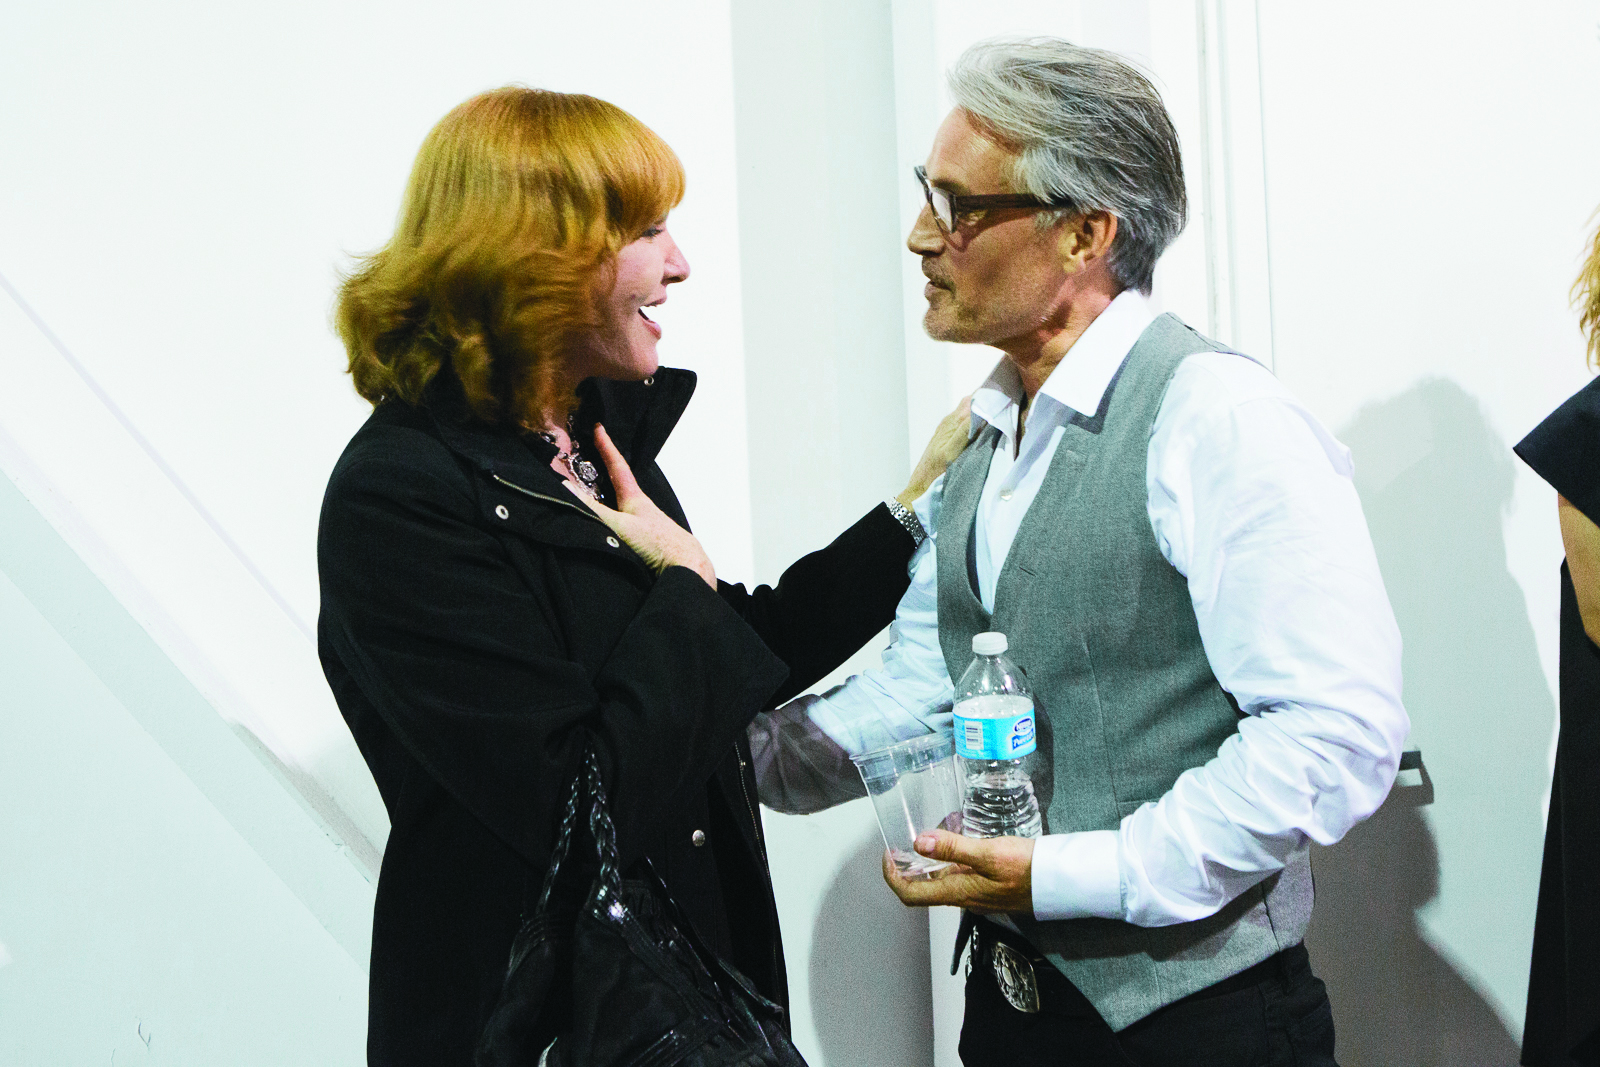 Vivienne Mackinder and Vaughn Acord share a moment backstage.